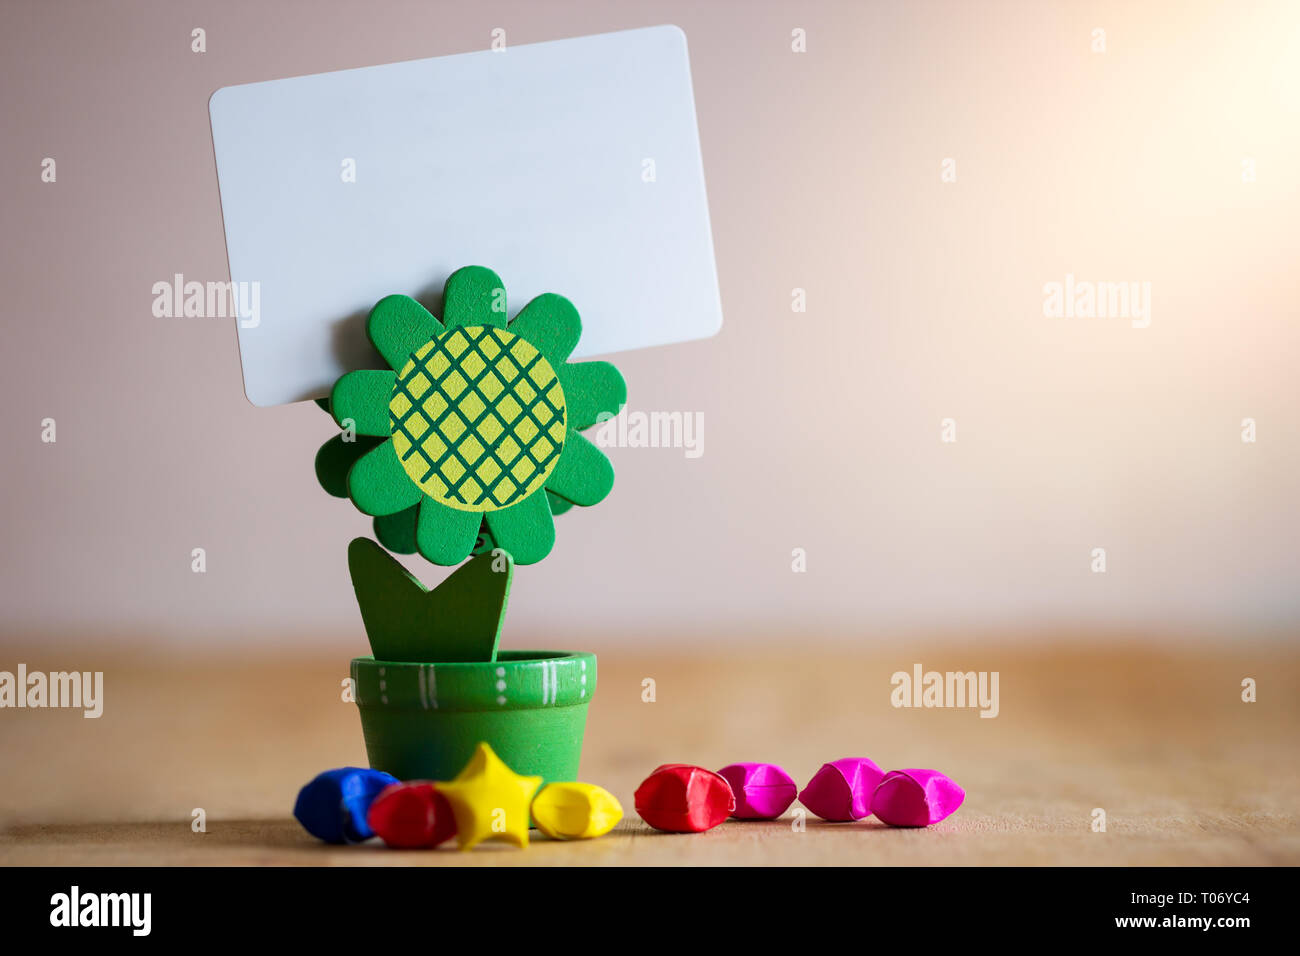 Clip holder card stand green sunflower shaped and multicolored paper stars on wooden table. White plastic blank card in morning sunlight. Stock Photo